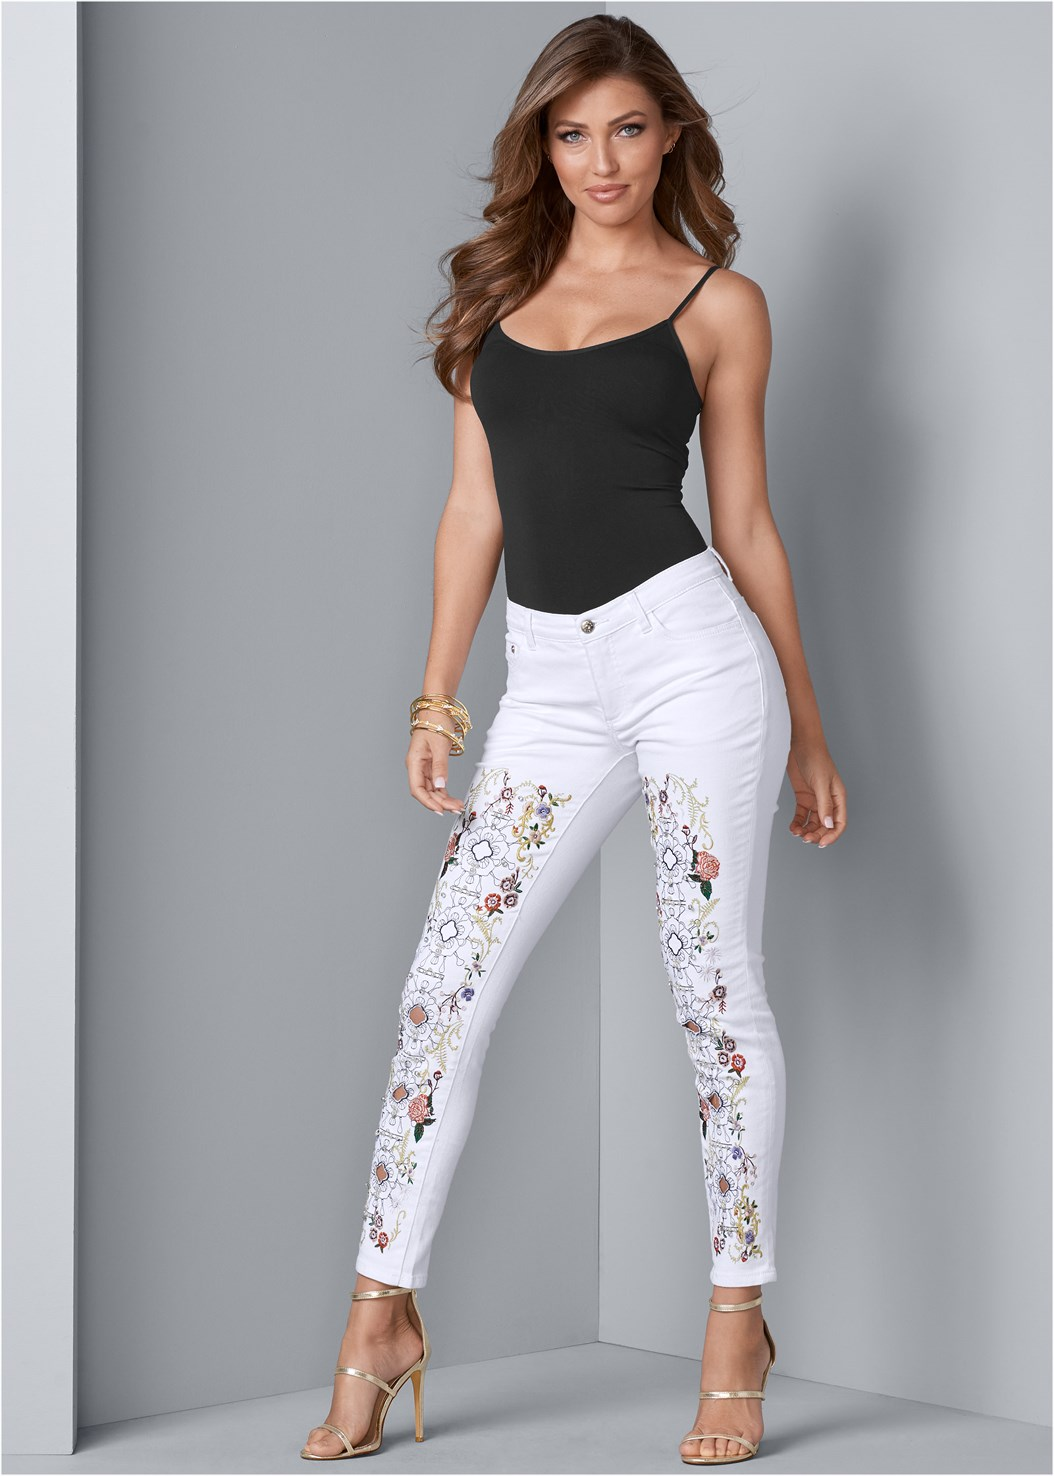 Embellished Jeans,Basic Cami Two Pack,High Heel Strappy Sandals